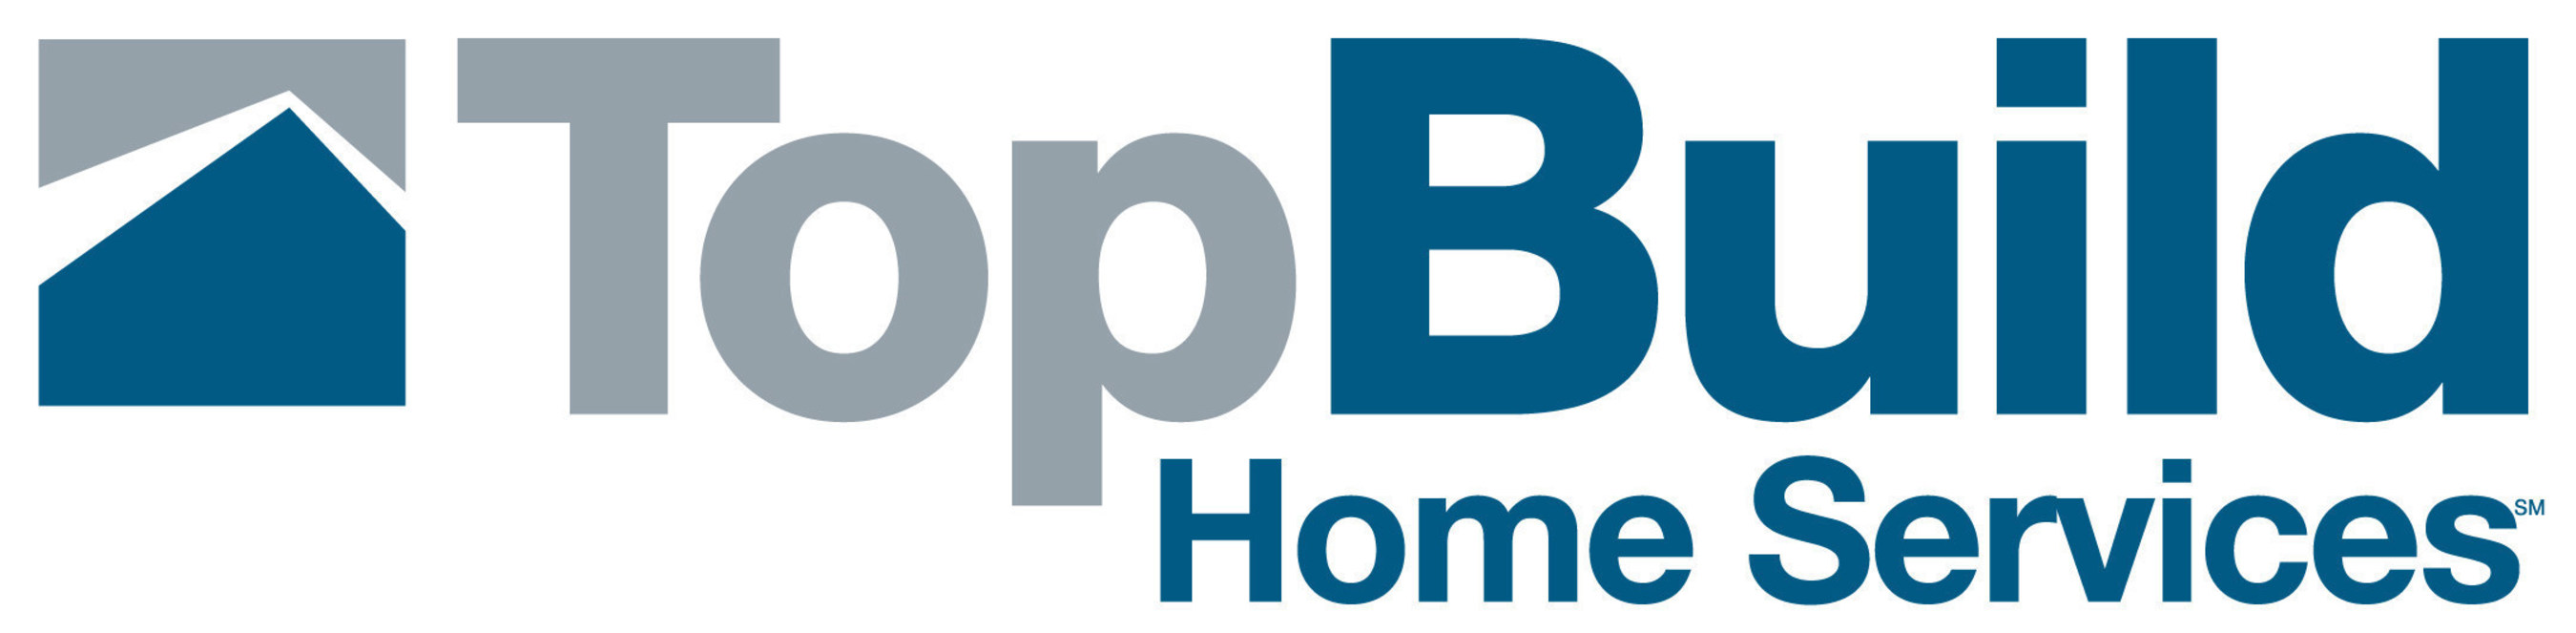 TopBuild Corp. is the leading installer and distributor of insulation and other building products to the United States construction industry.